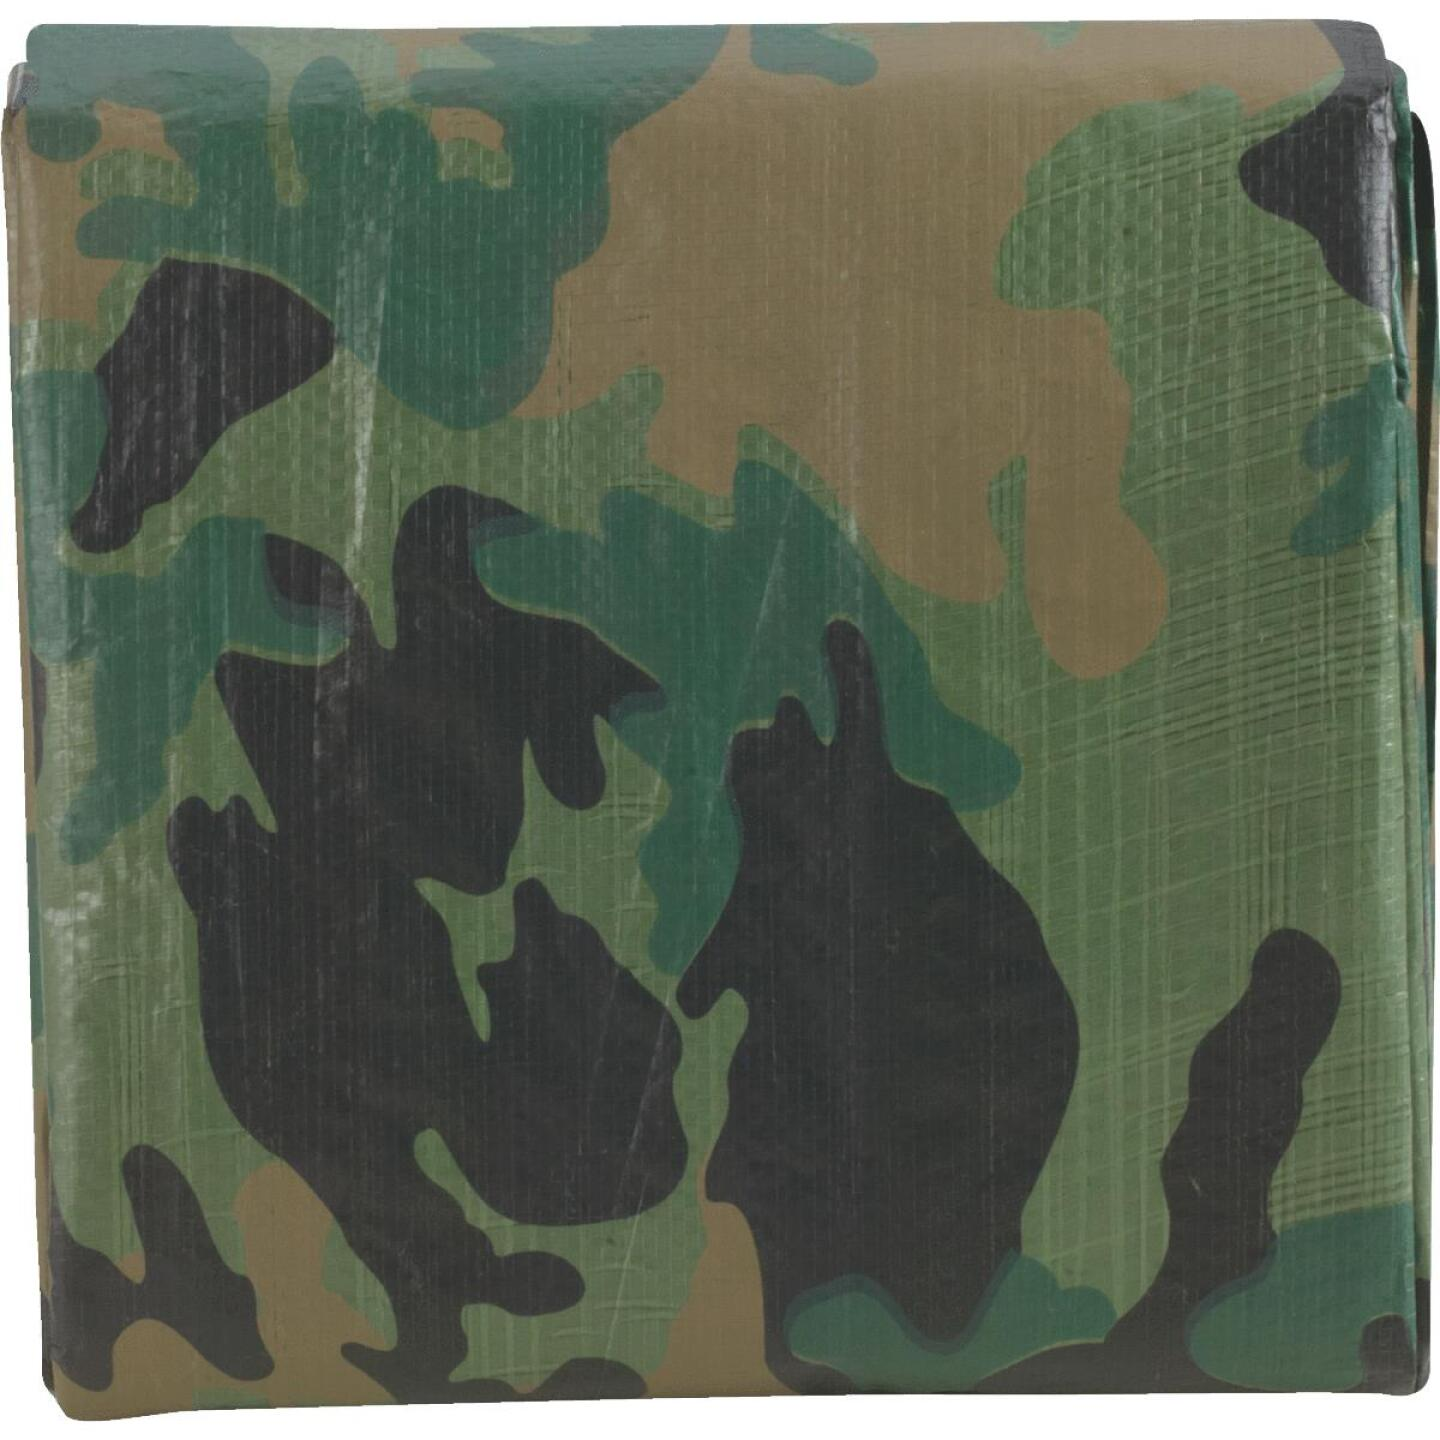 Do it Camo Woven 8 Ft. x 10 Ft. Medium Duty Poly Tarp Image 2